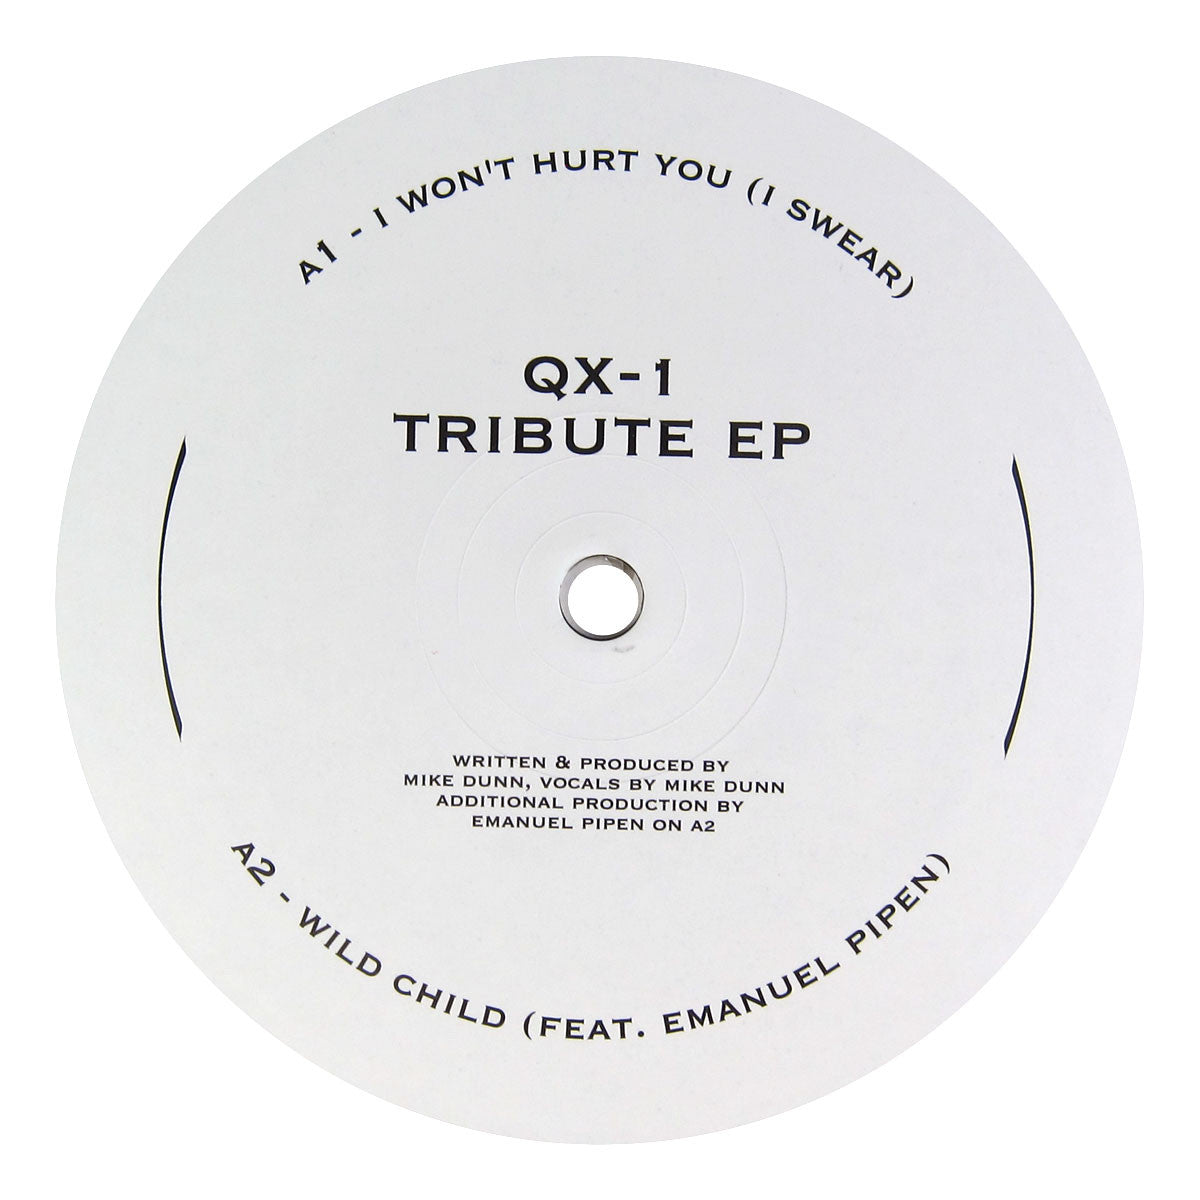 QX-1: Tribute EP (Mike Dunn) Vinyl 12""